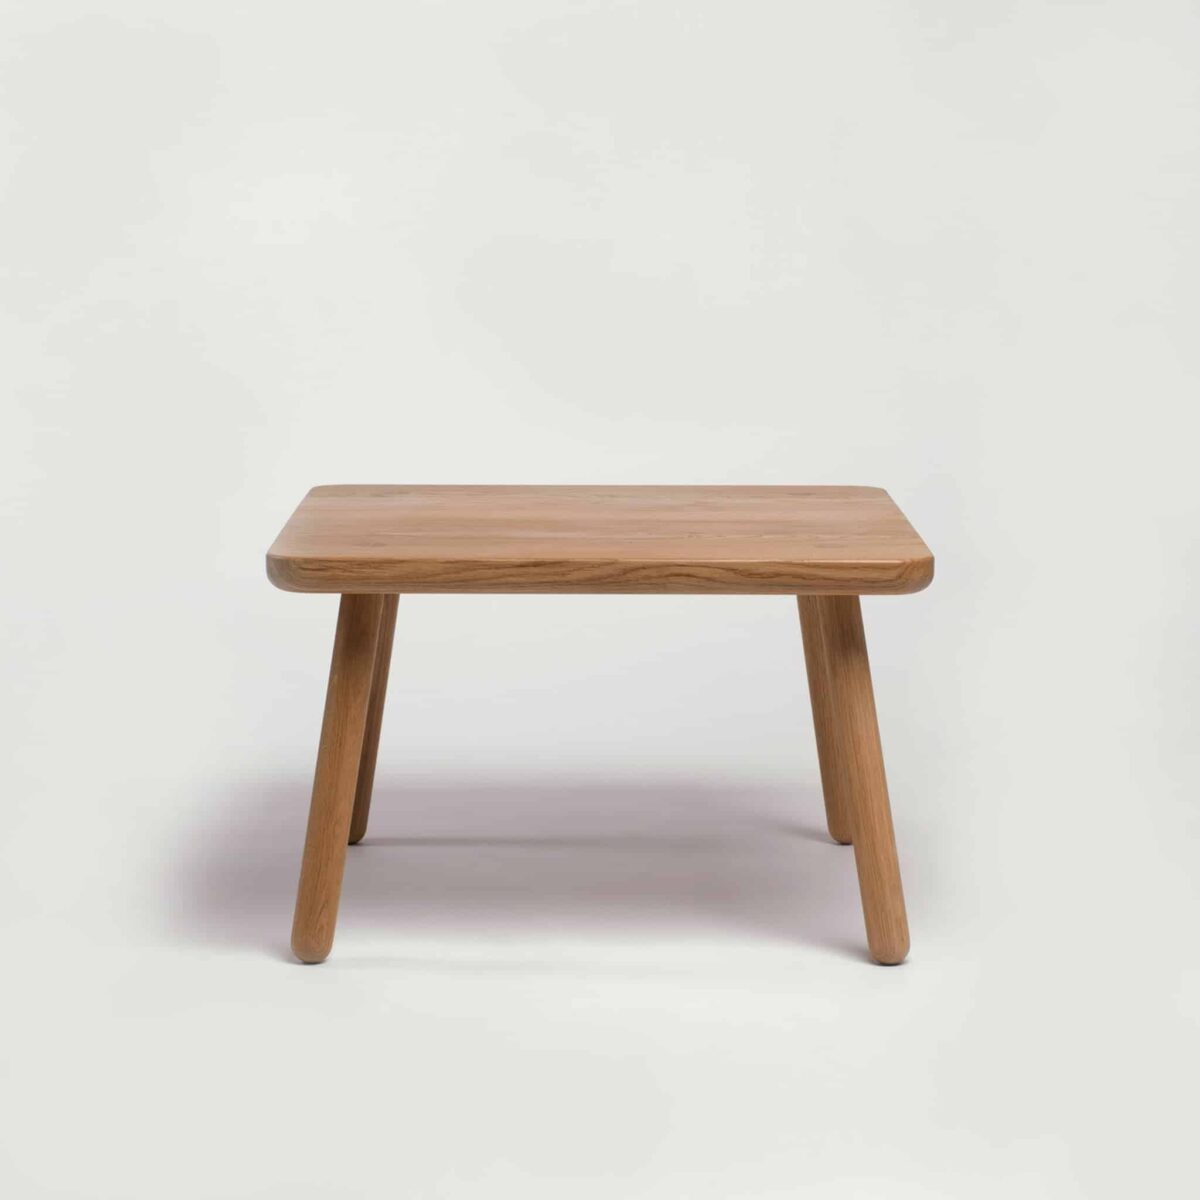 series-one-coffee-table-square-another-country-001-1.jpg